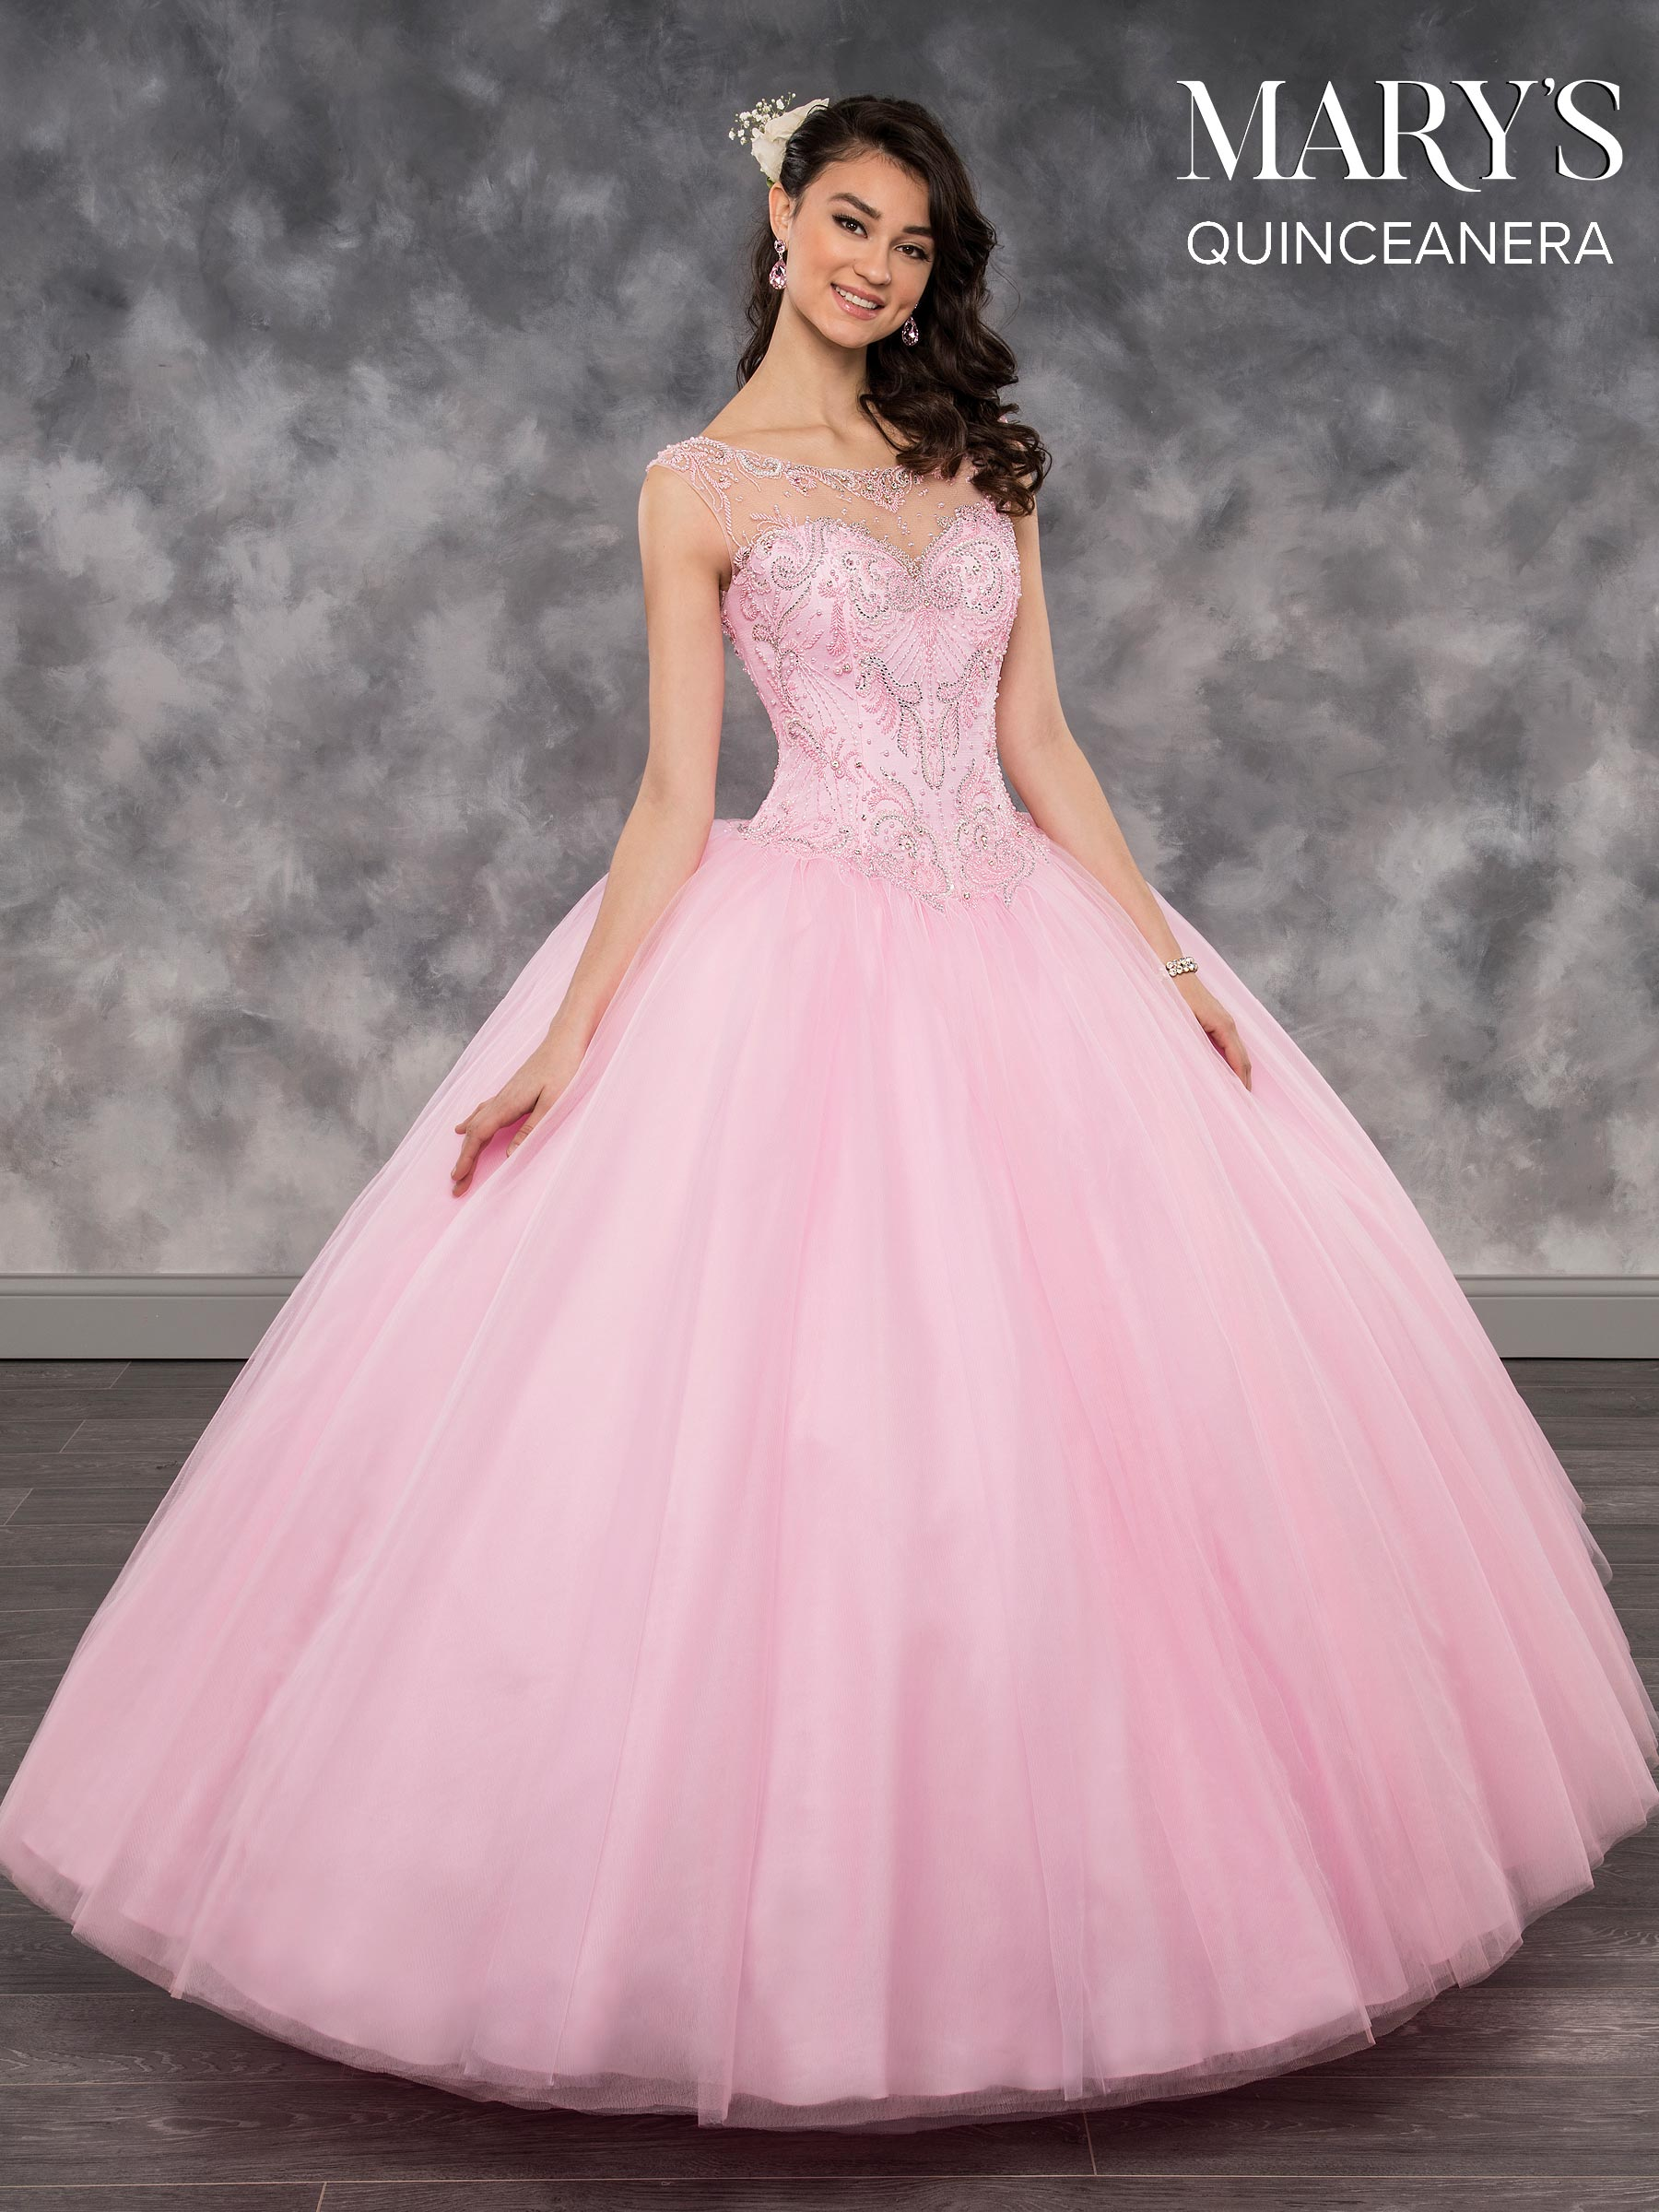 Marys Quinceanera Dresses | Style - MQ2033 in Mermaid, Navy, Pink ...